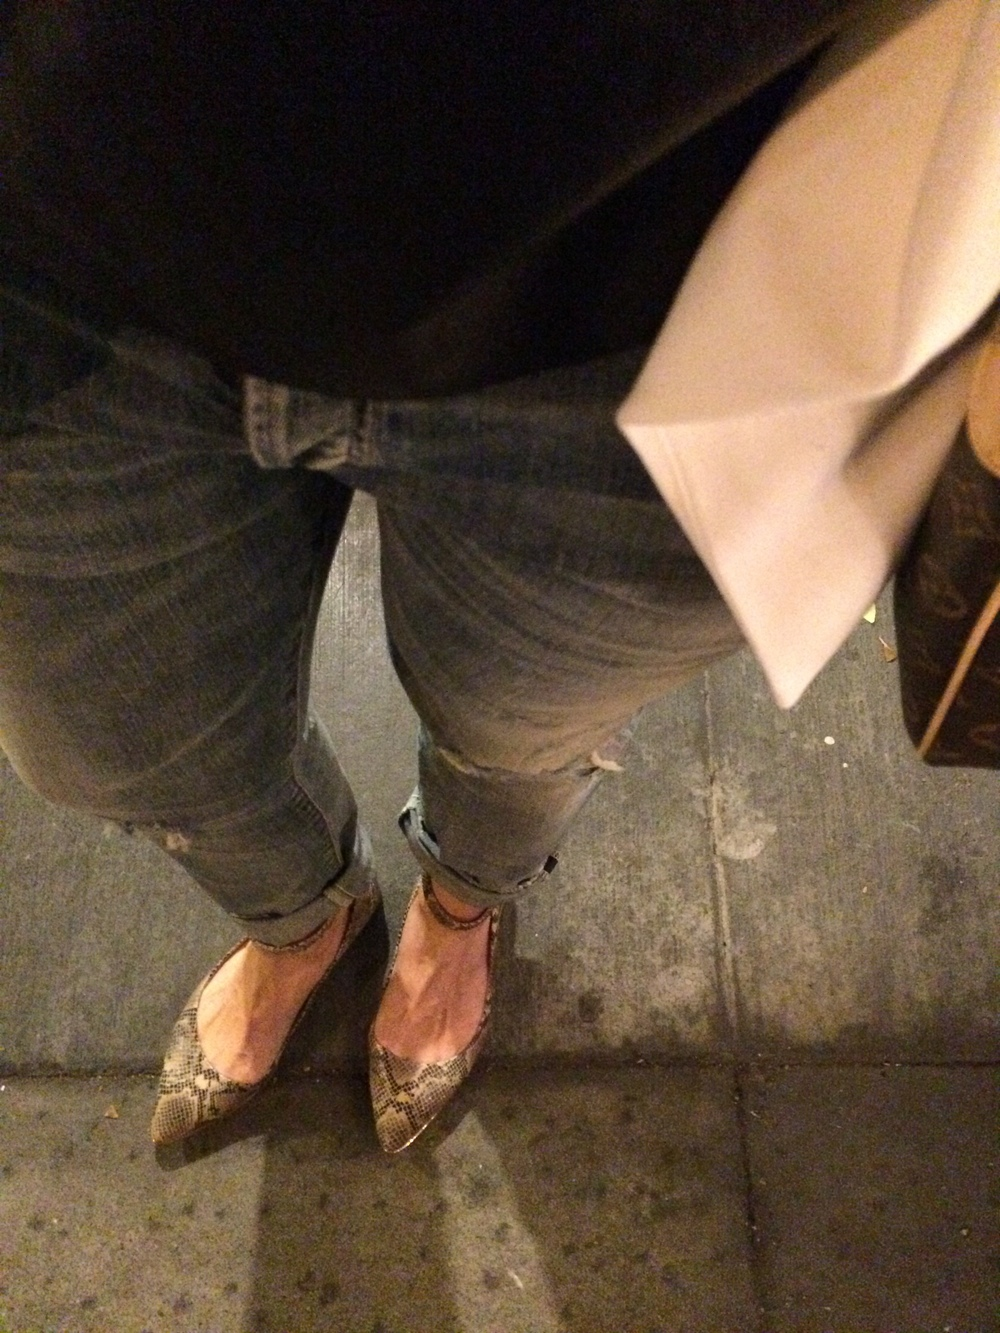 Pointed toe flats the perfect shoes to dress up distressed jeans when heels aren't happening.